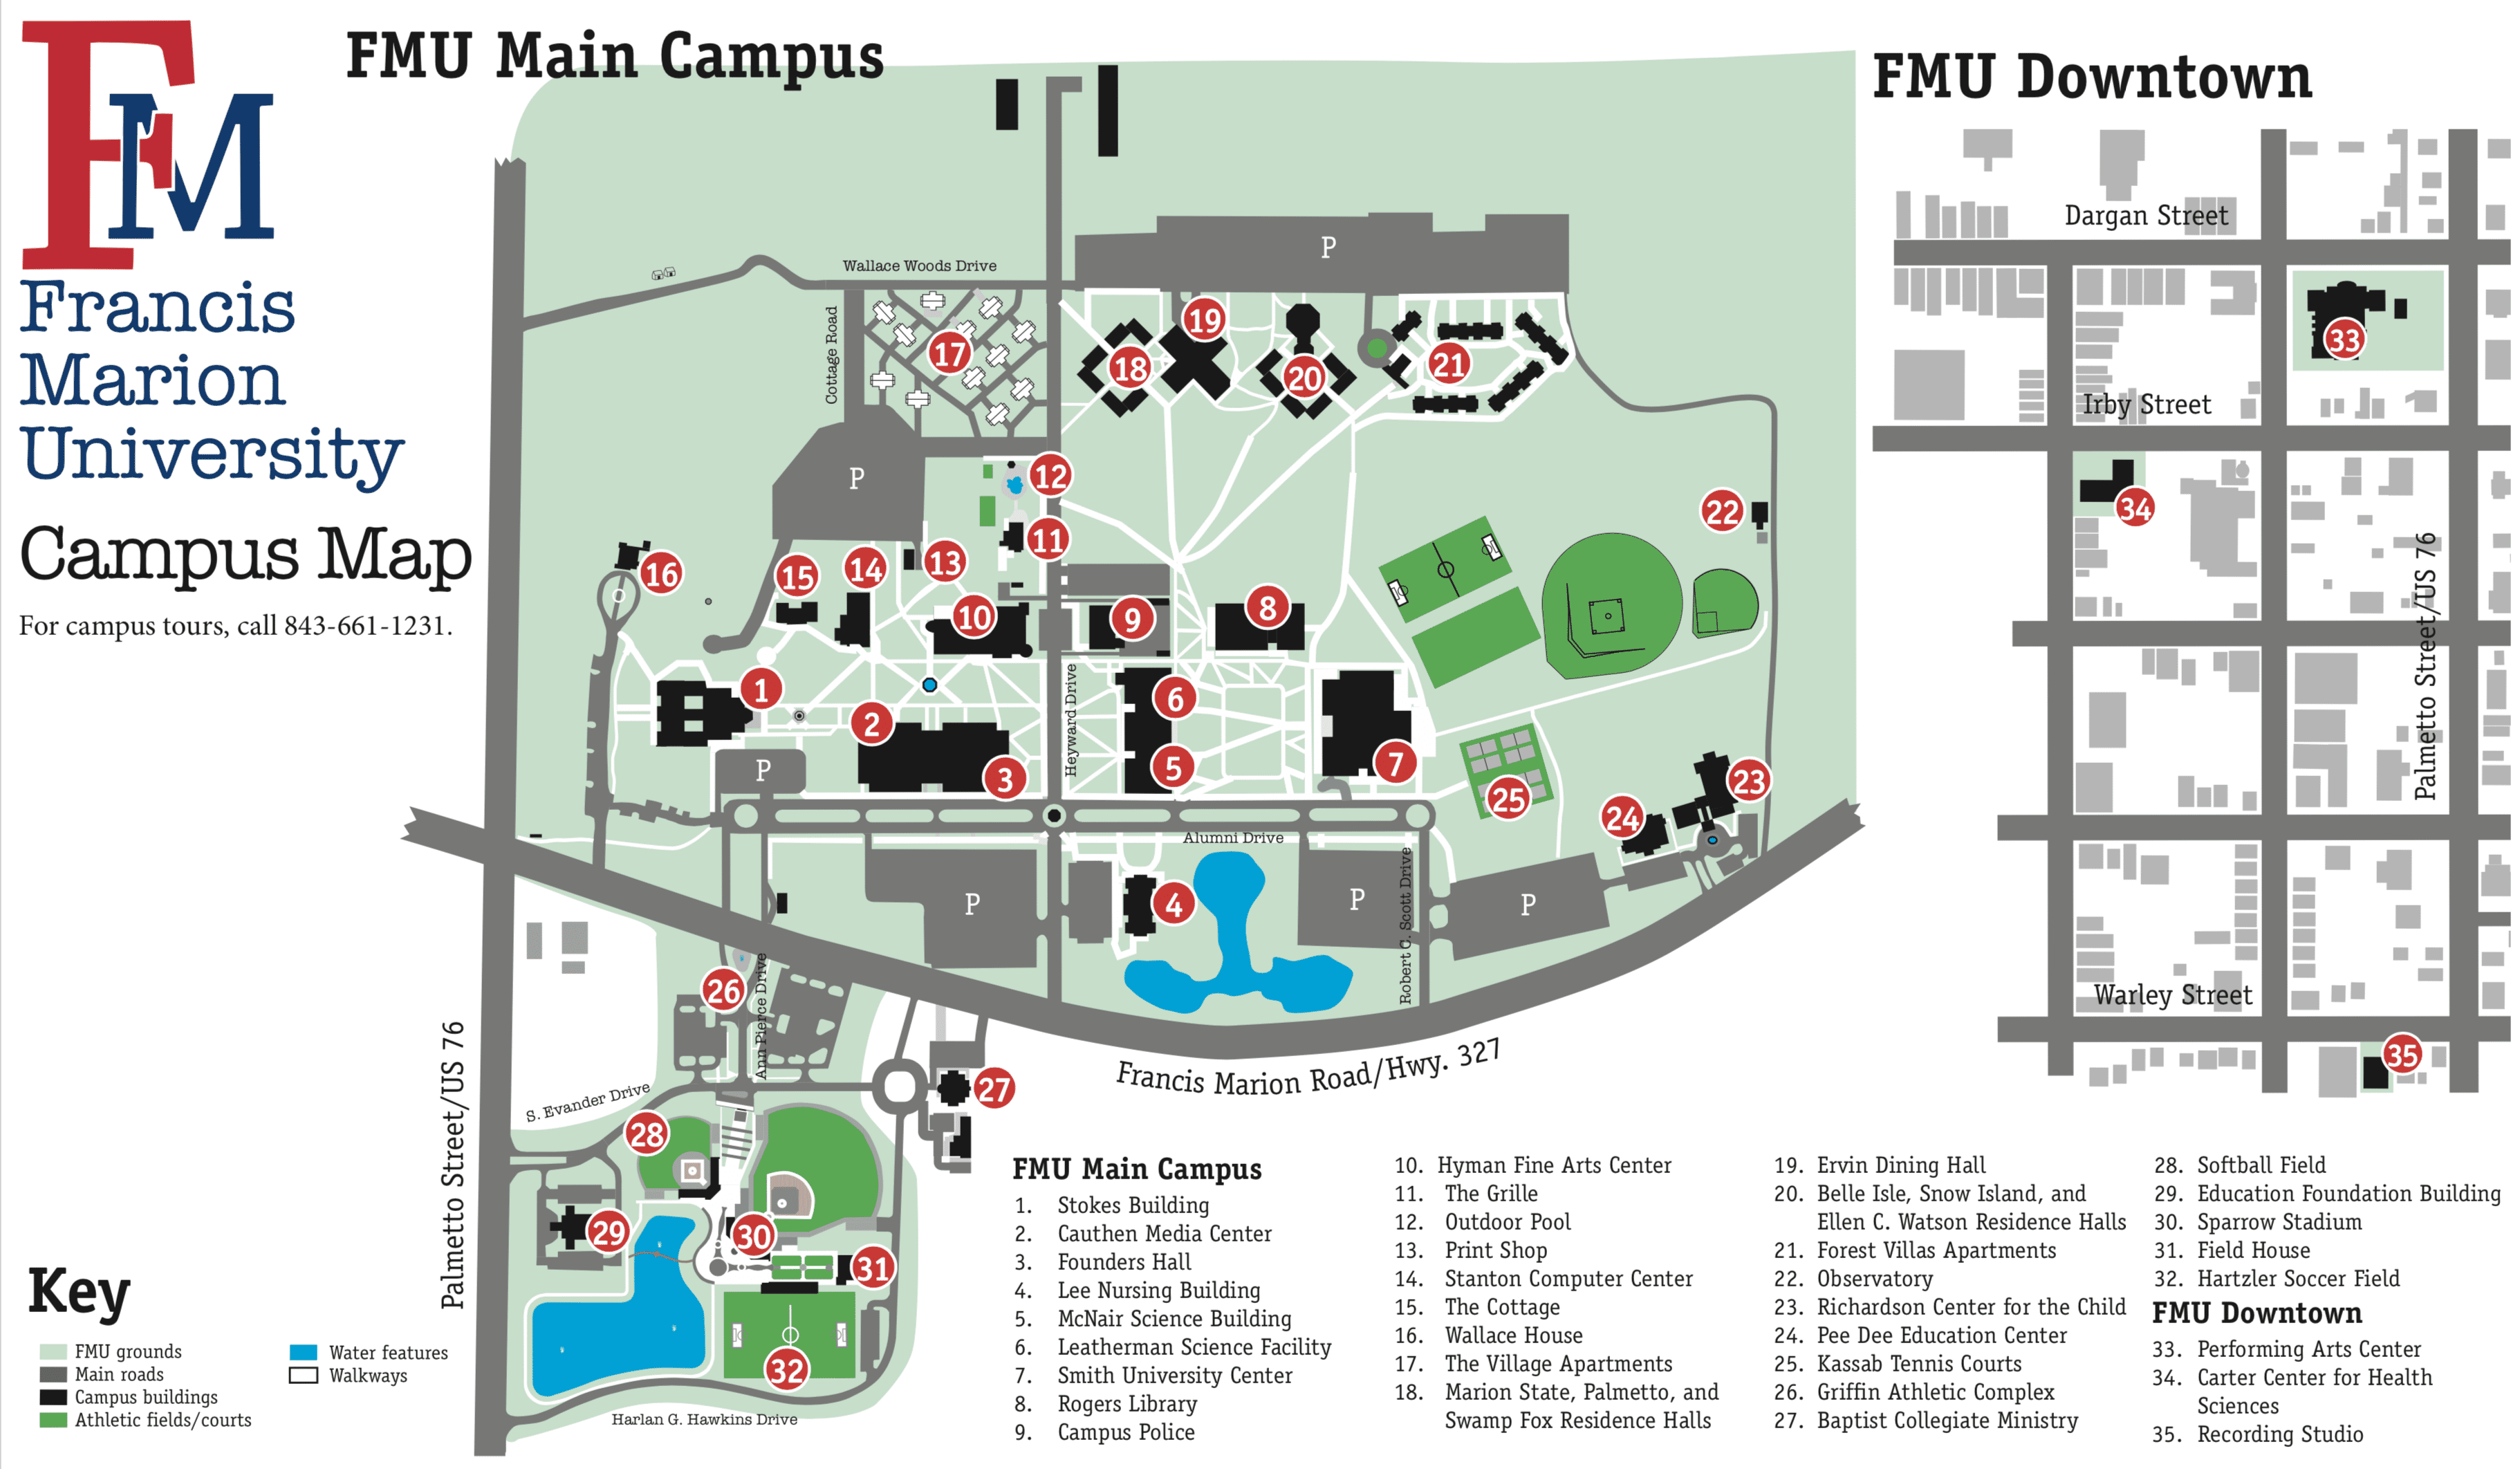 Graphic Design on the FMU Campus Map in 2019